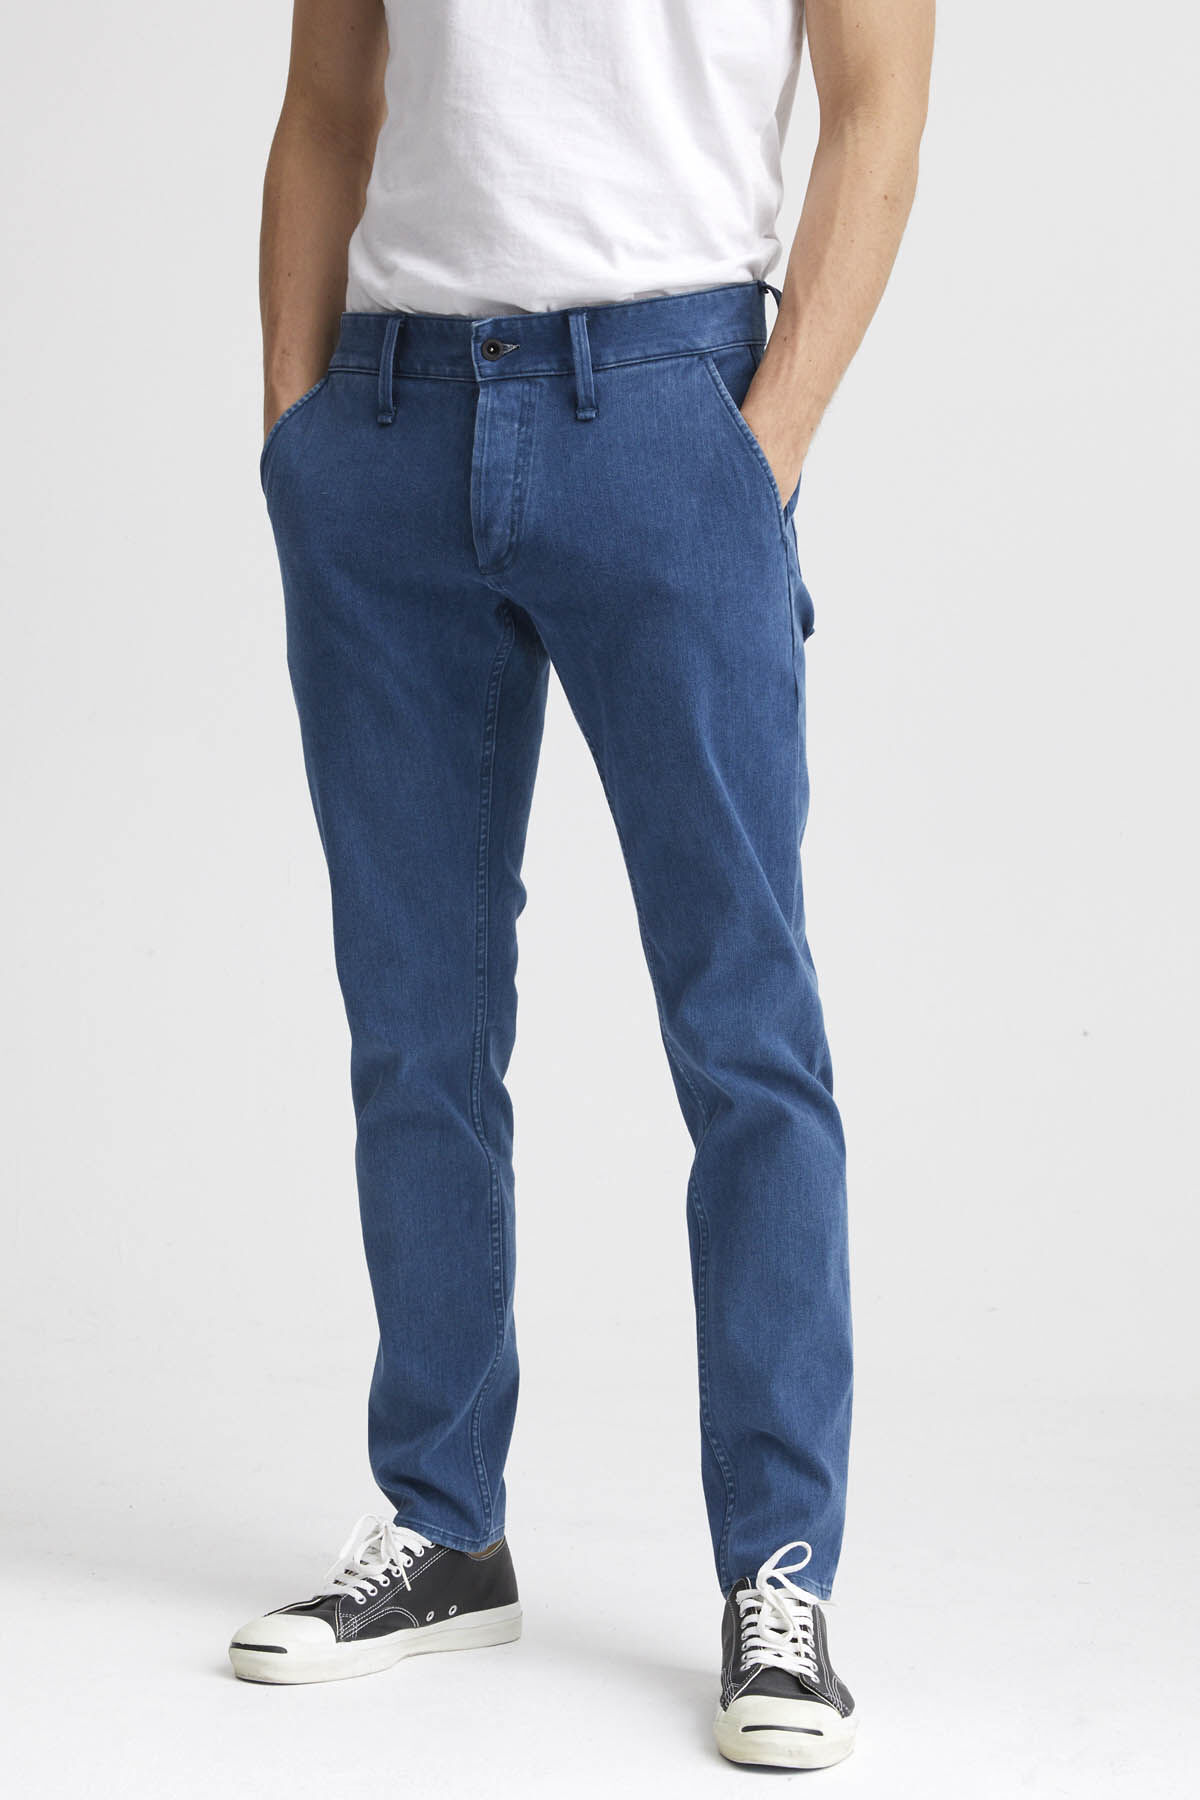 YORK Stonewashed Denim - Slim Tapered Fit